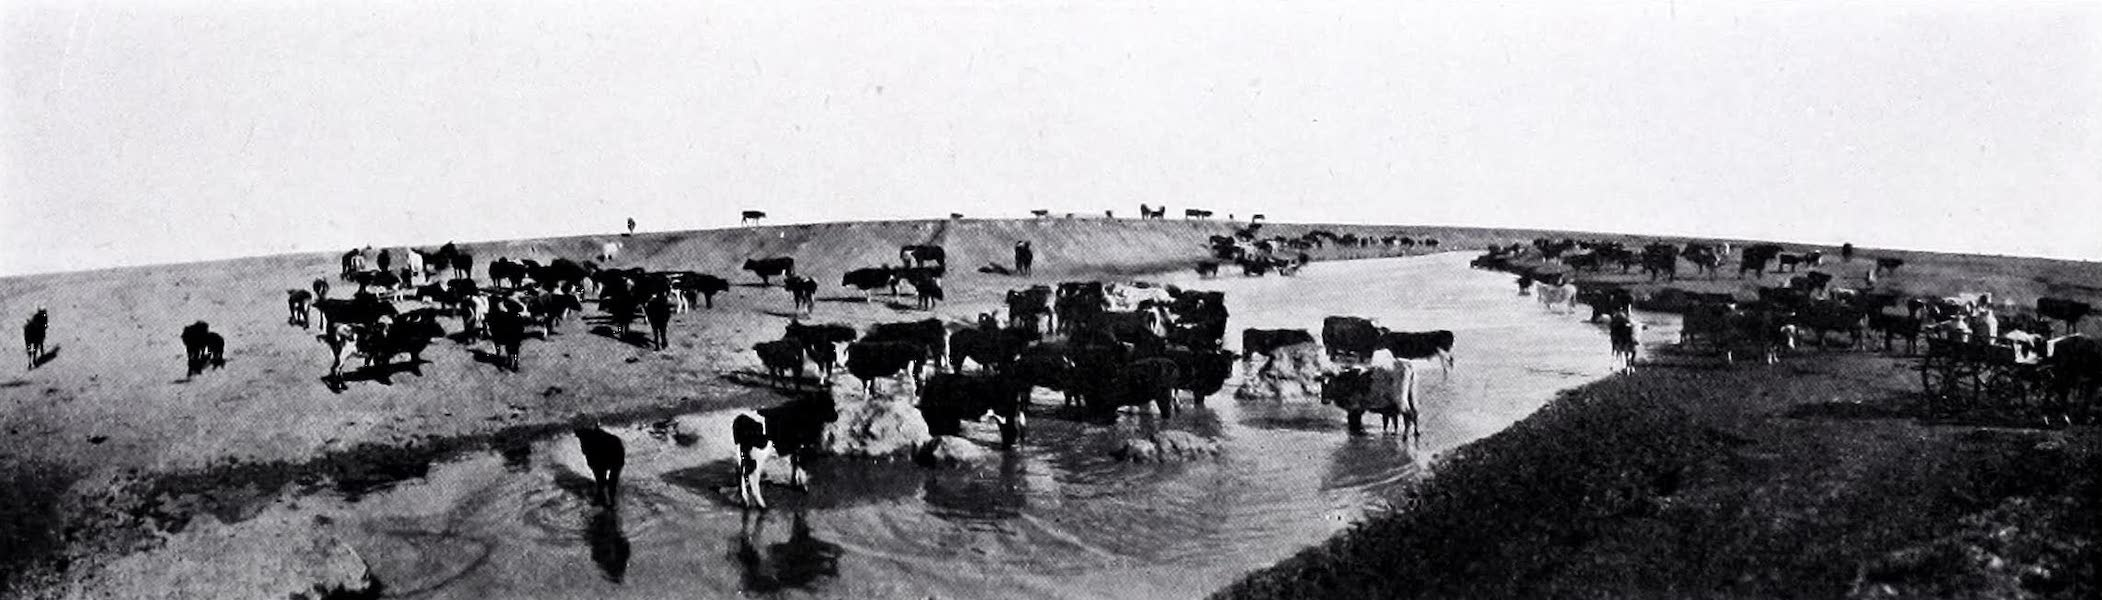 A Herd At Noonday